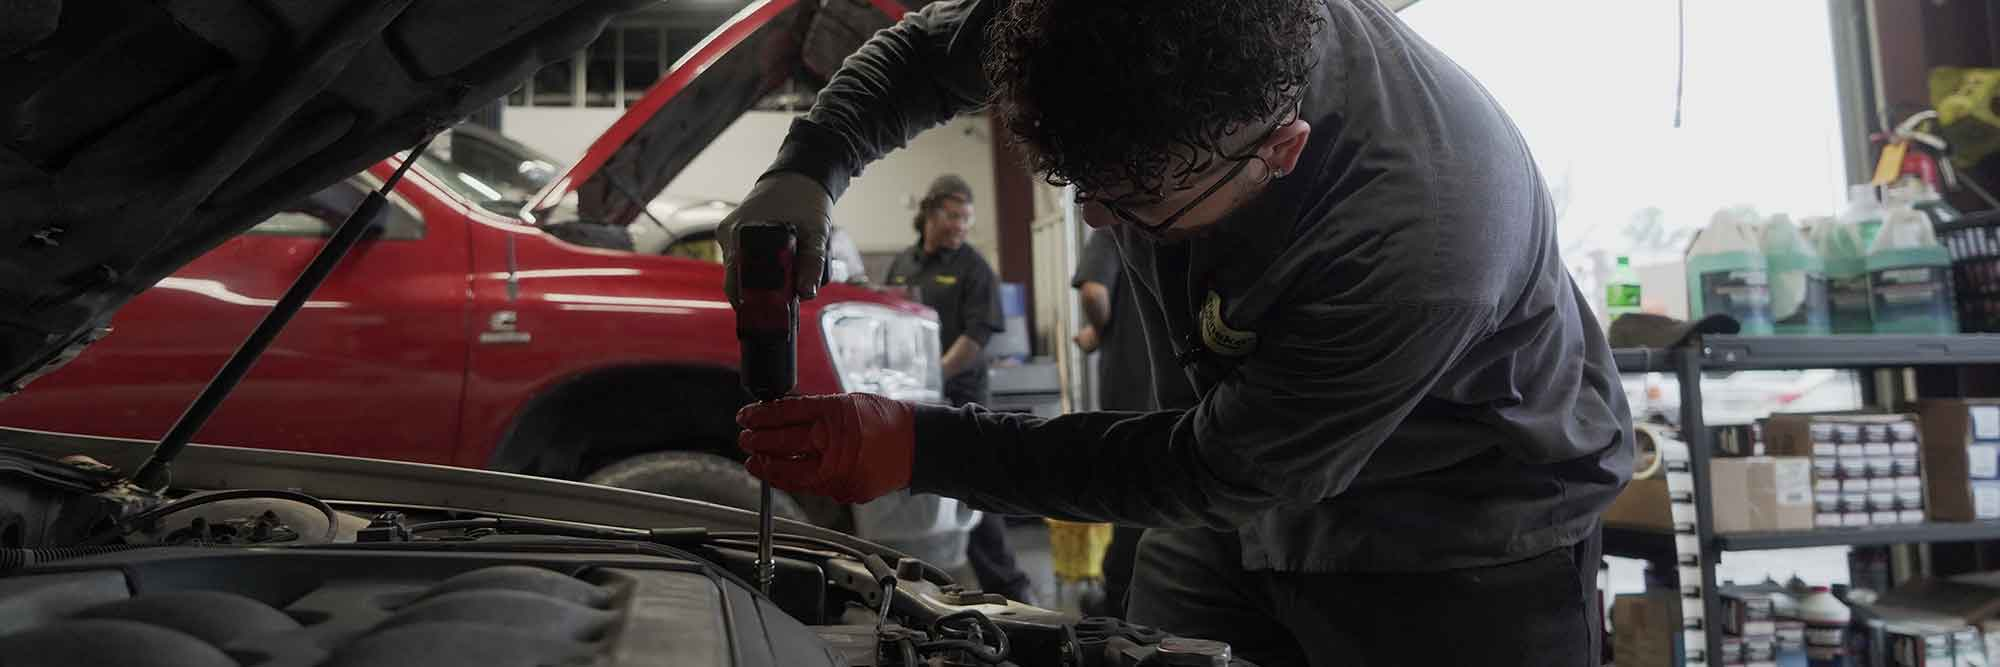 Meinke employee using a tool under the hood of a car in the Meineke center